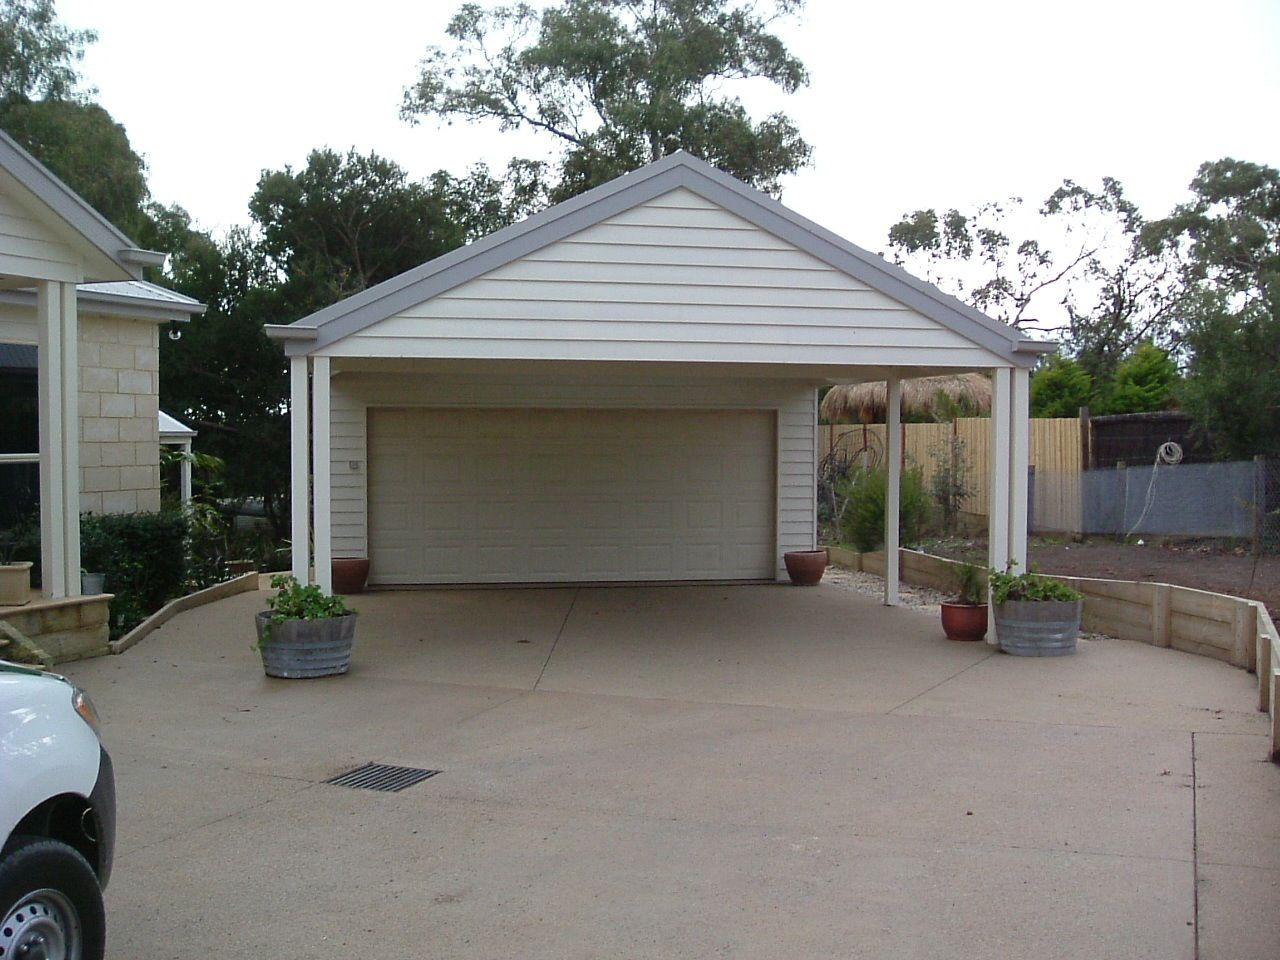 Carport ideas carport ideas pinterest carport ideas for Carport garage plans